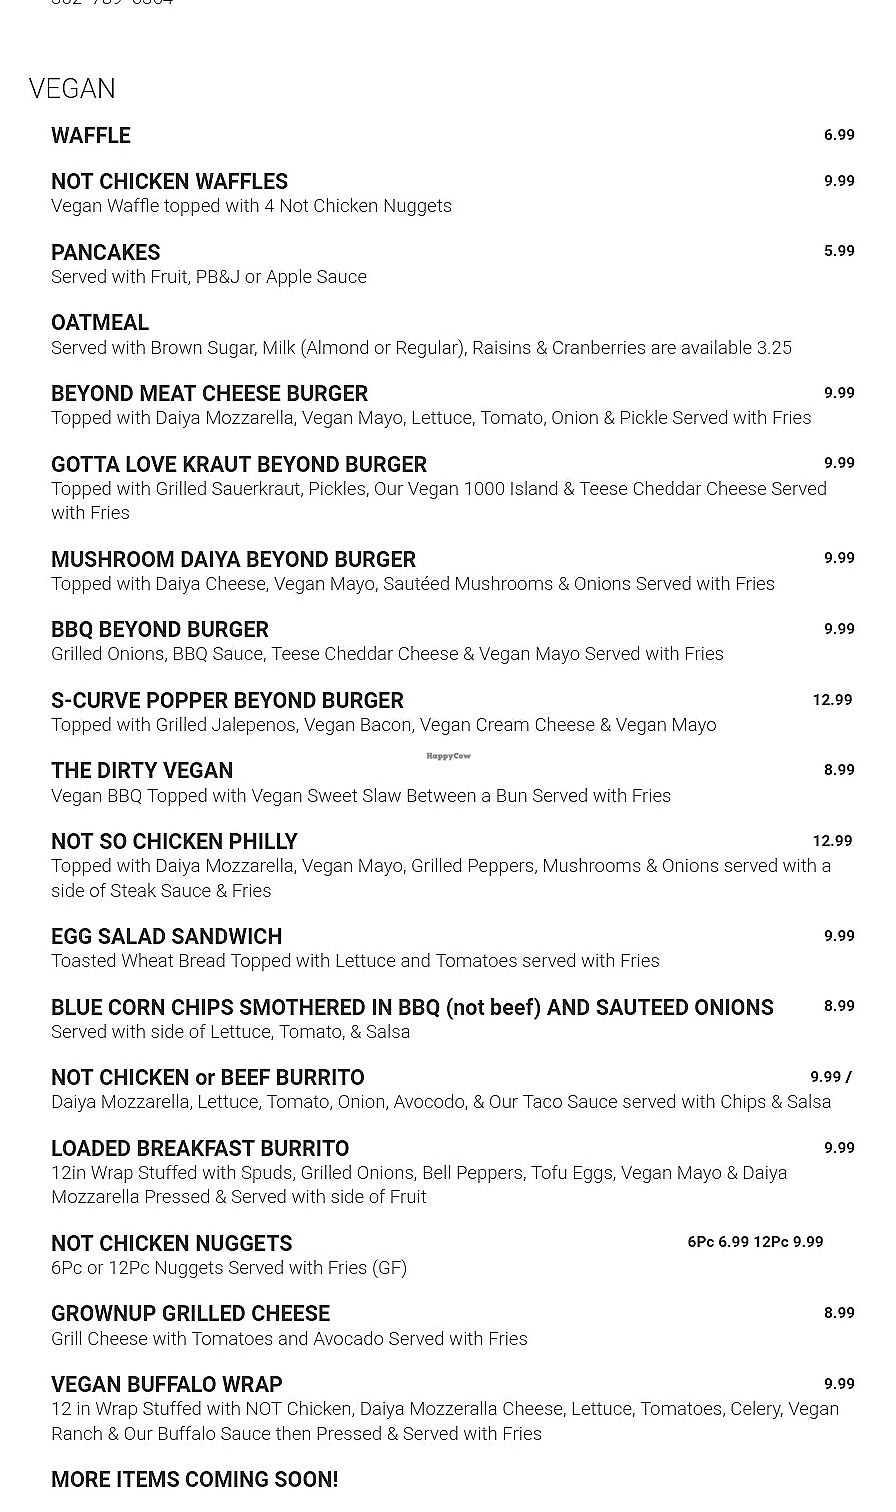 """Photo of Ocala's Downtown Diner  by <a href=""""/members/profile/NinaNSchweers"""">NinaNSchweers</a> <br/>Ocala  Downtown Diner NEW Vegan menu! <br/> January 4, 2018  - <a href='/contact/abuse/image/106684/342750'>Report</a>"""